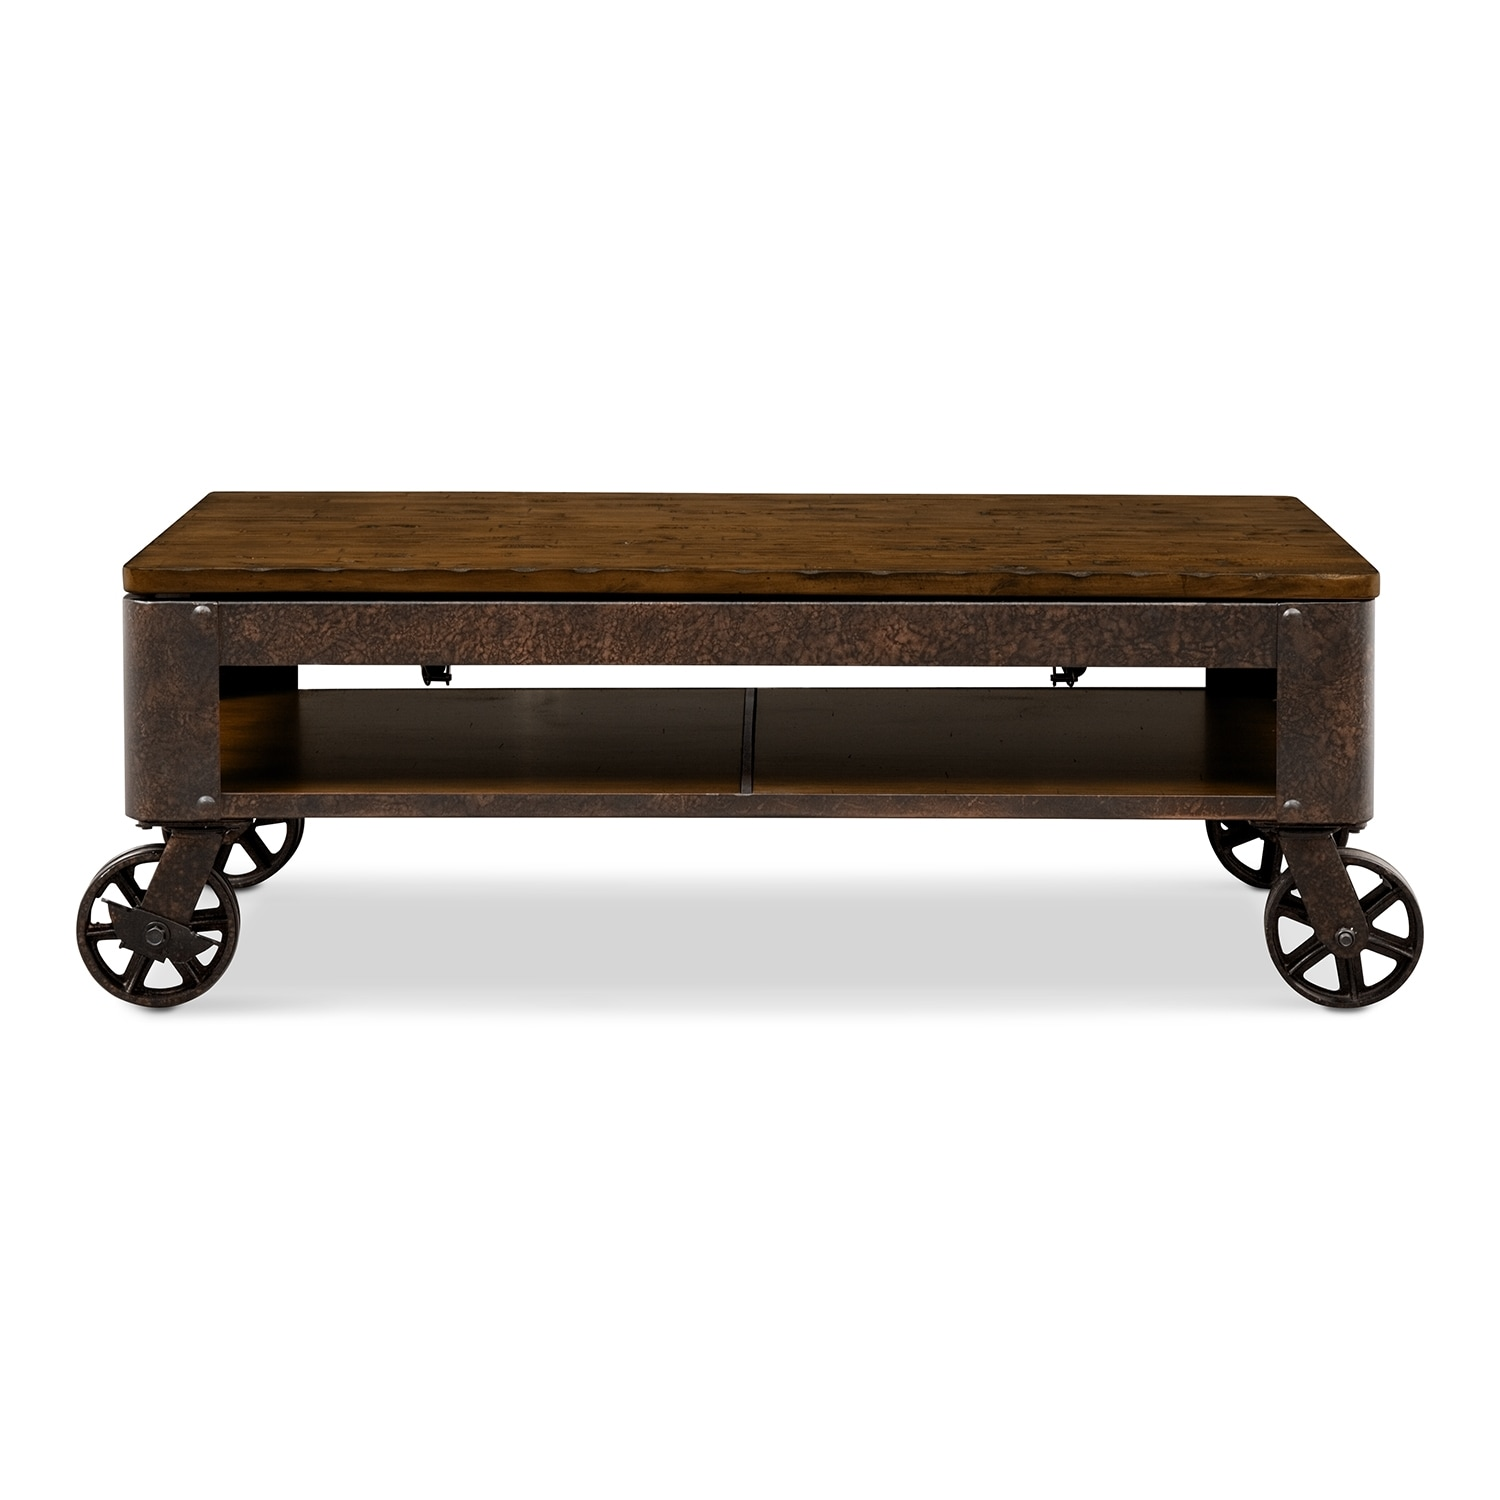 Shortline lift top cocktail table american signature furniture Coffee tables with casters